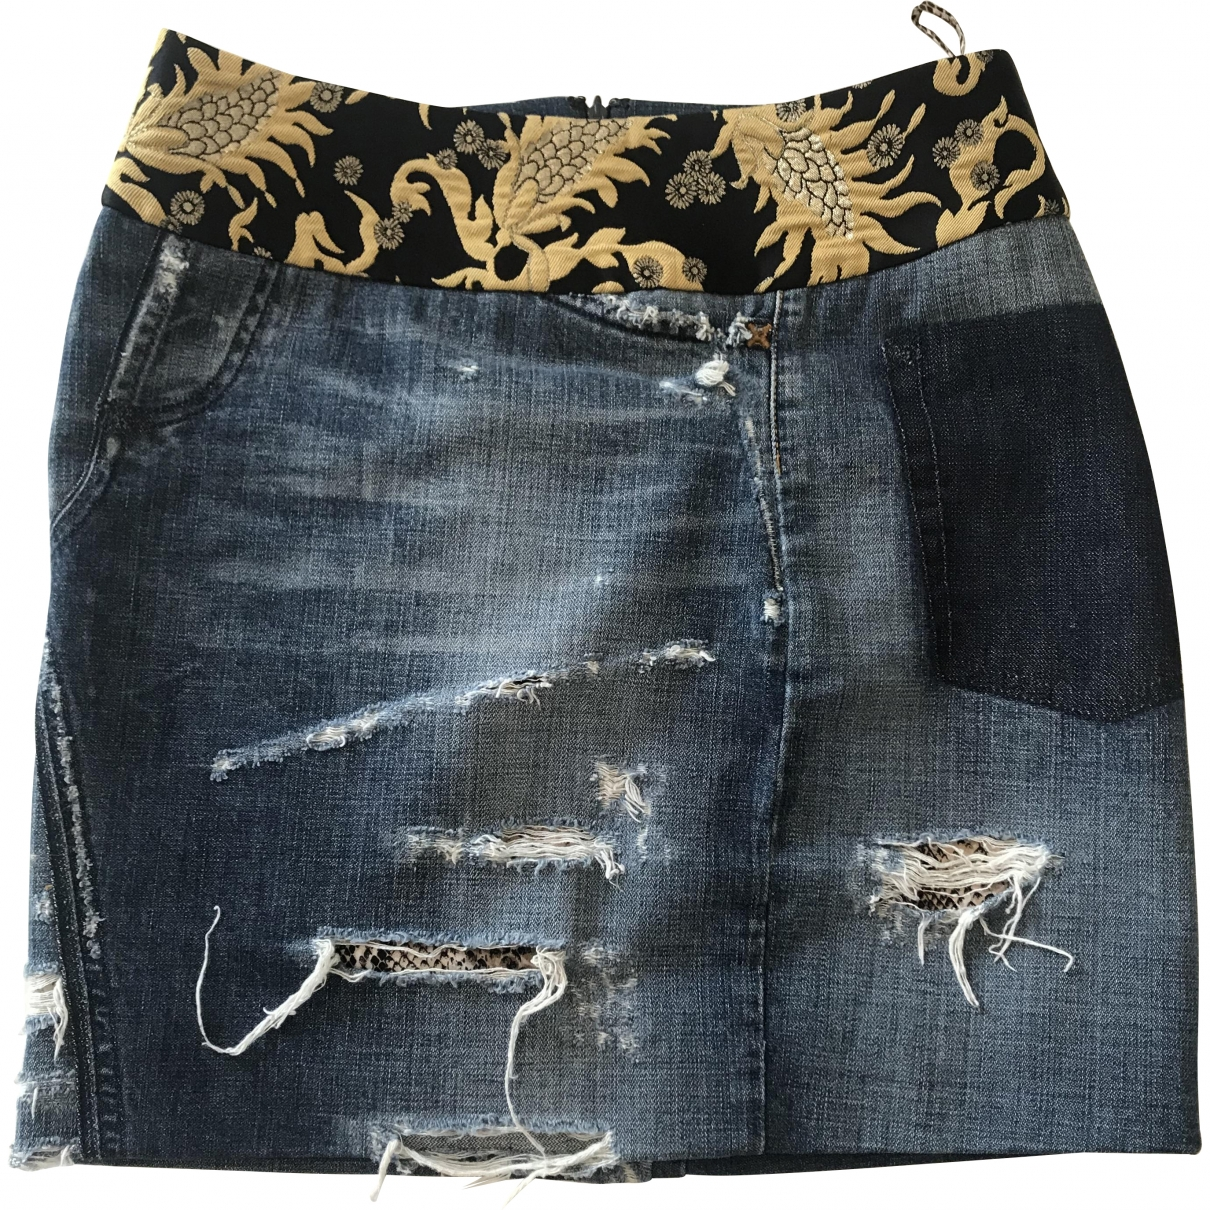 Dolce & Gabbana \N Blue Denim - Jeans skirt for Women 40 IT